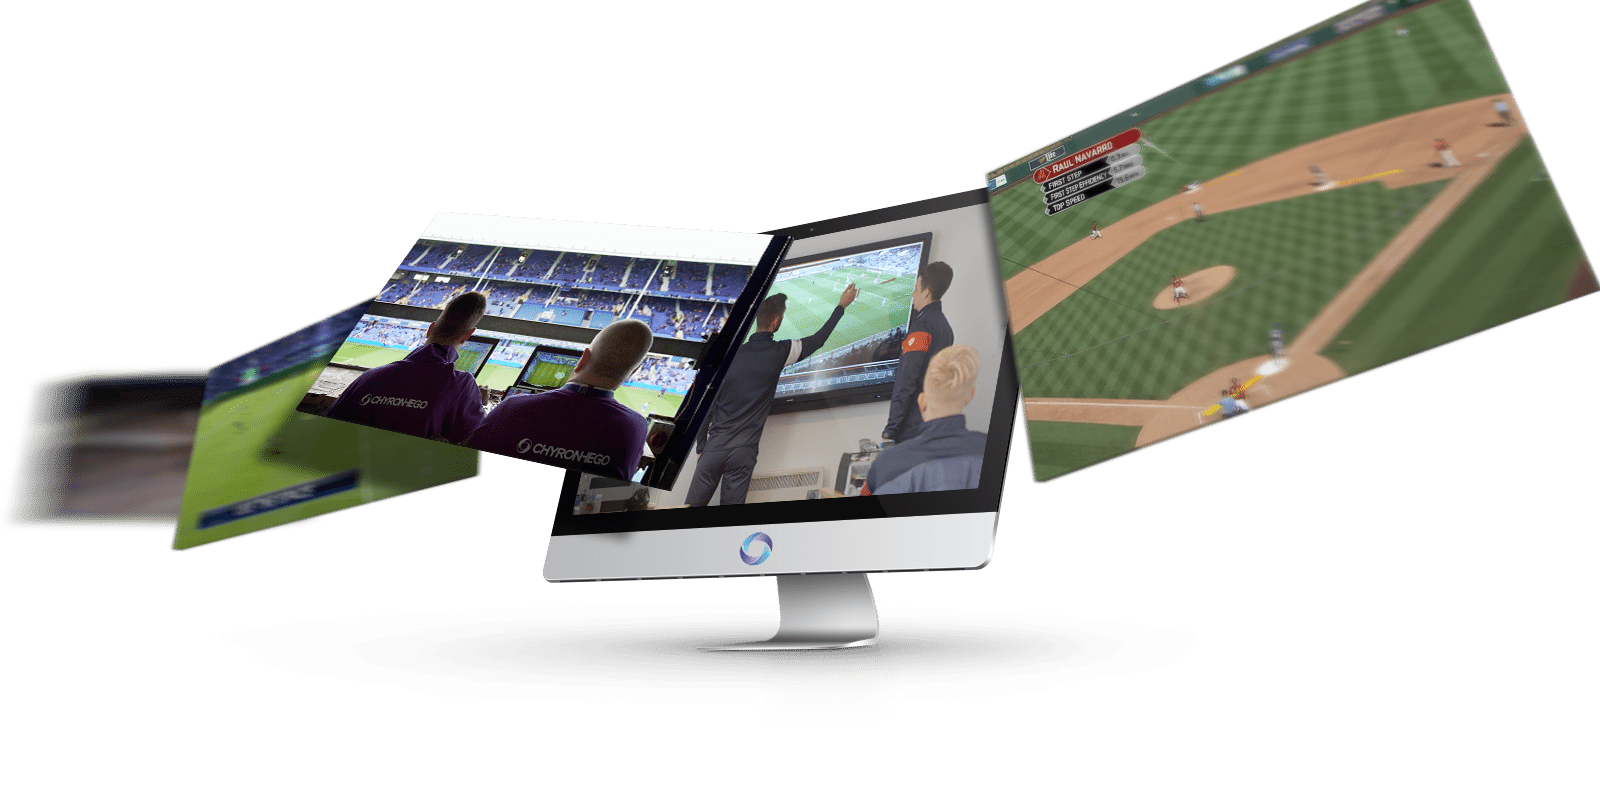 gB8tVRBpg3uJswBC2xqZ5 - 10 tech innovations we saw at the Cricket World Cup